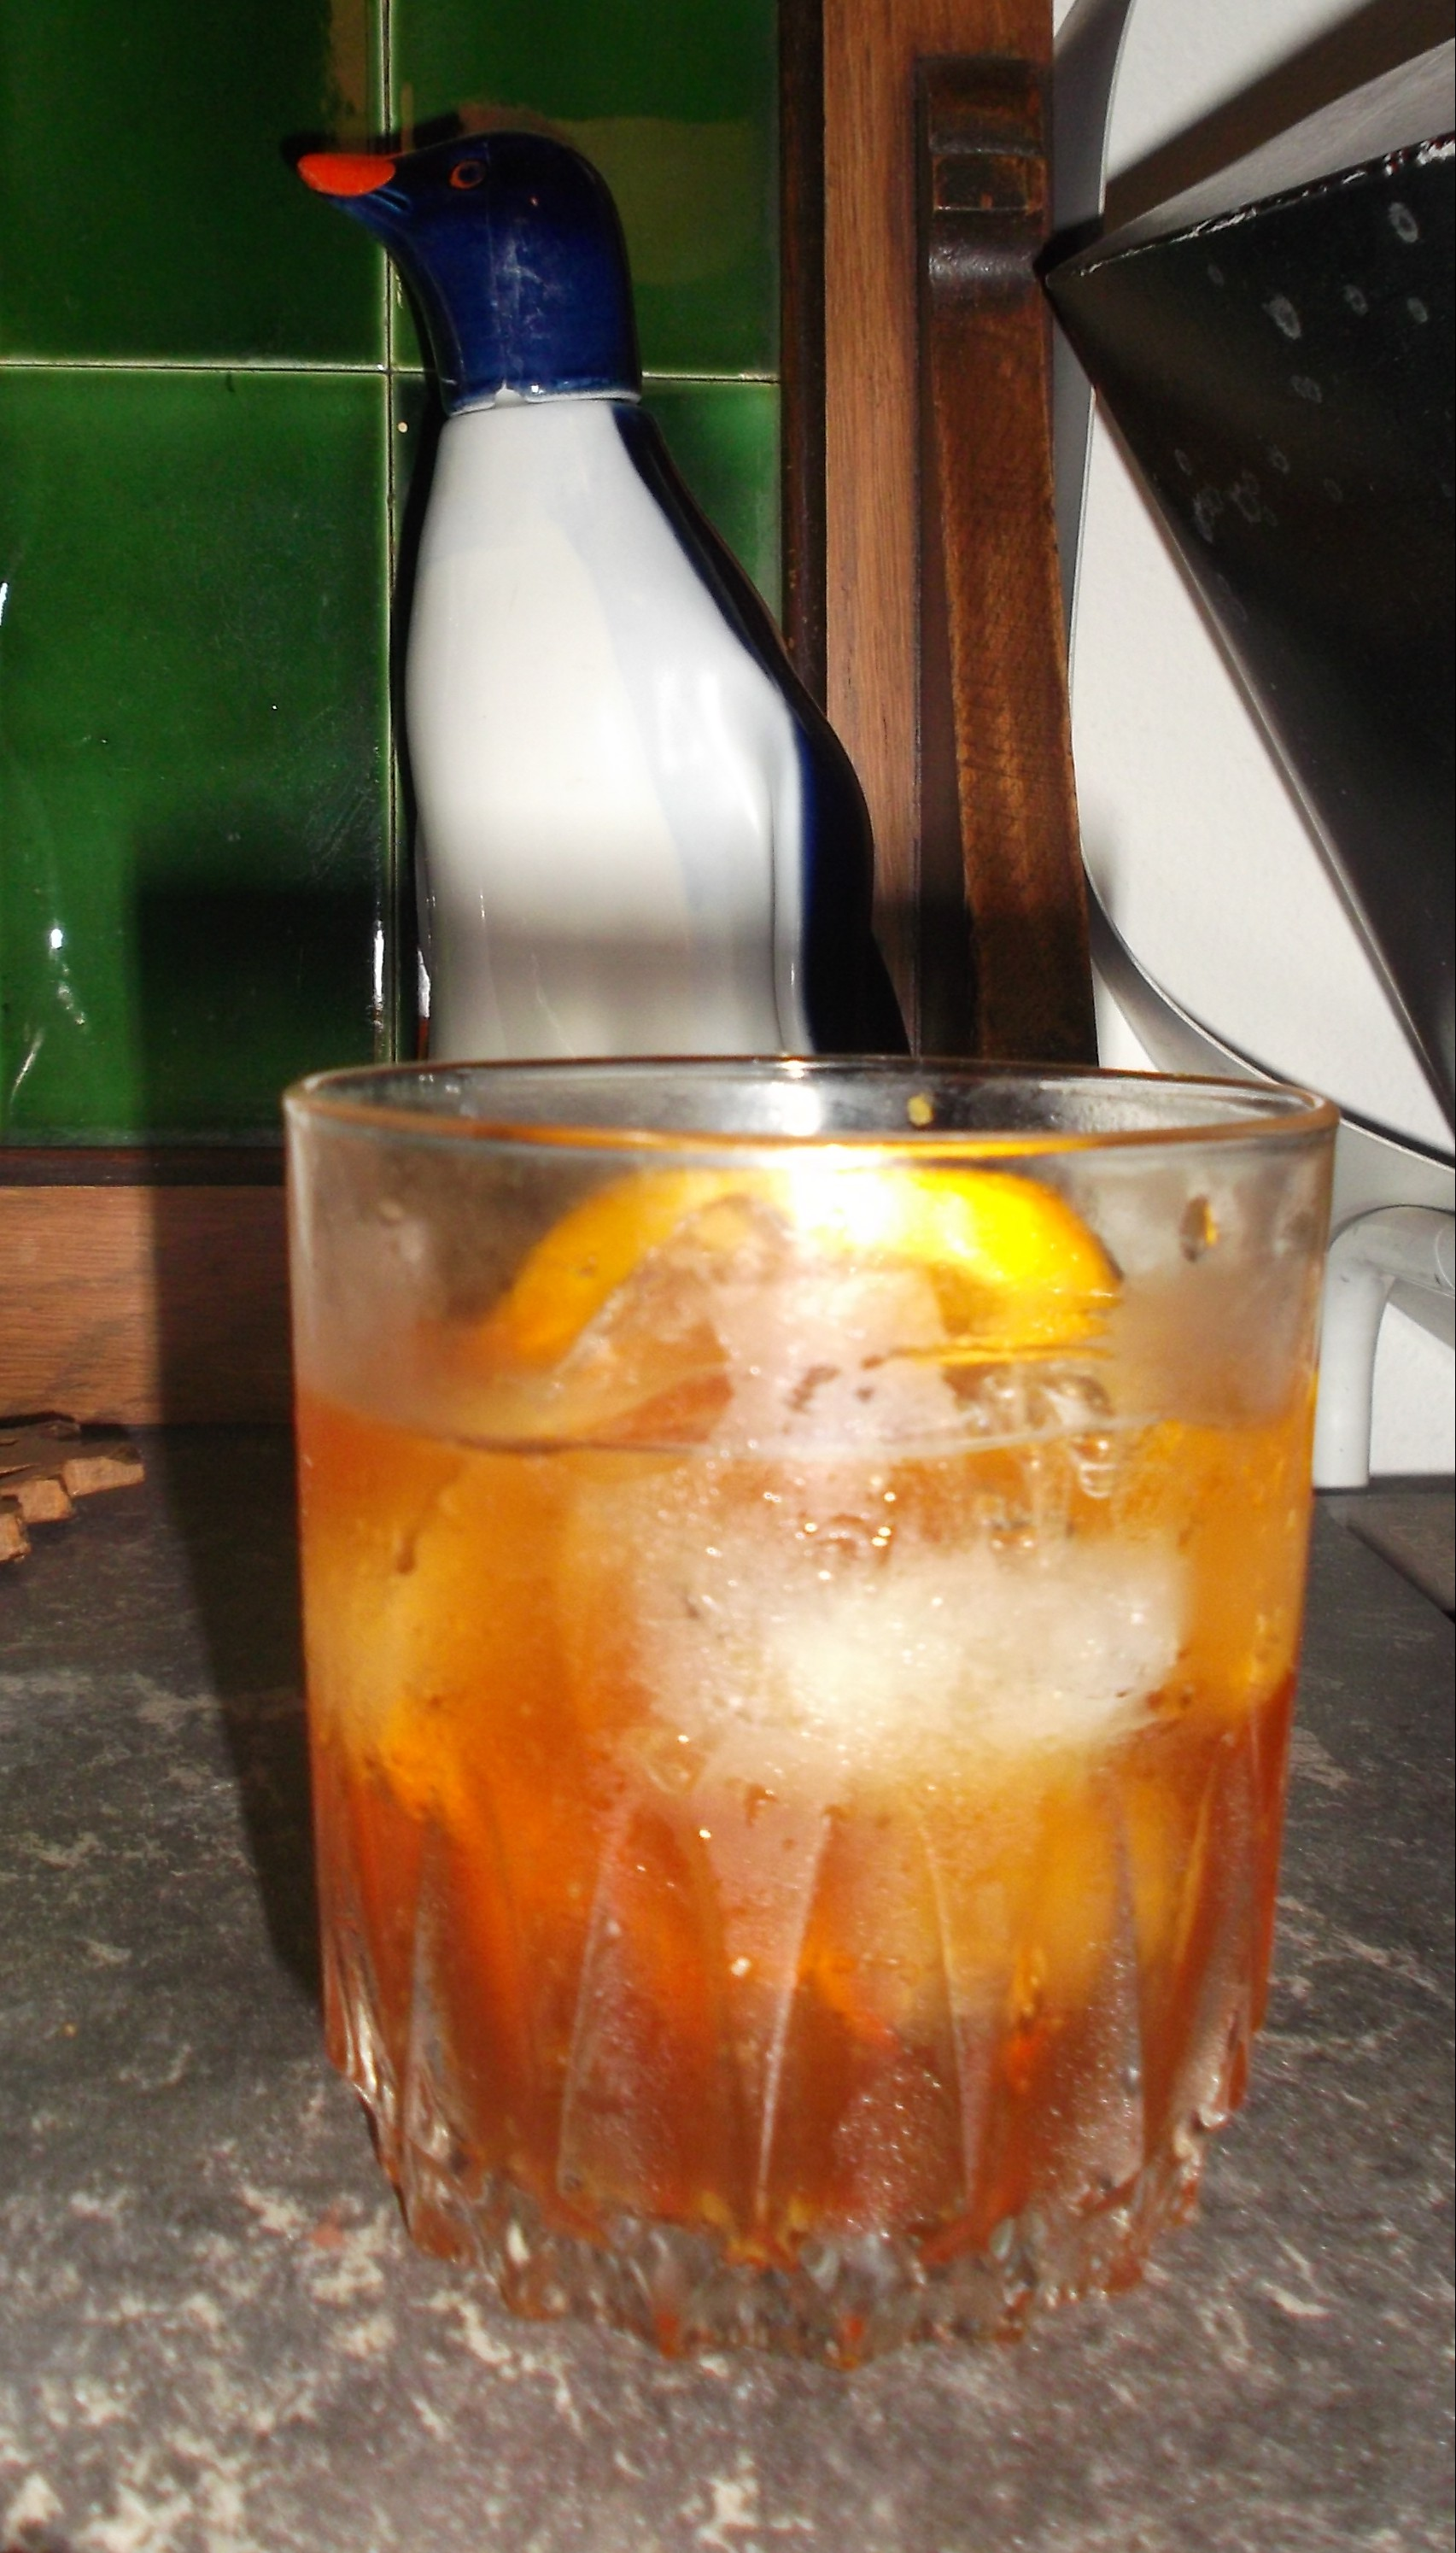 The Brugal 1888 Maple Old Fashioned.